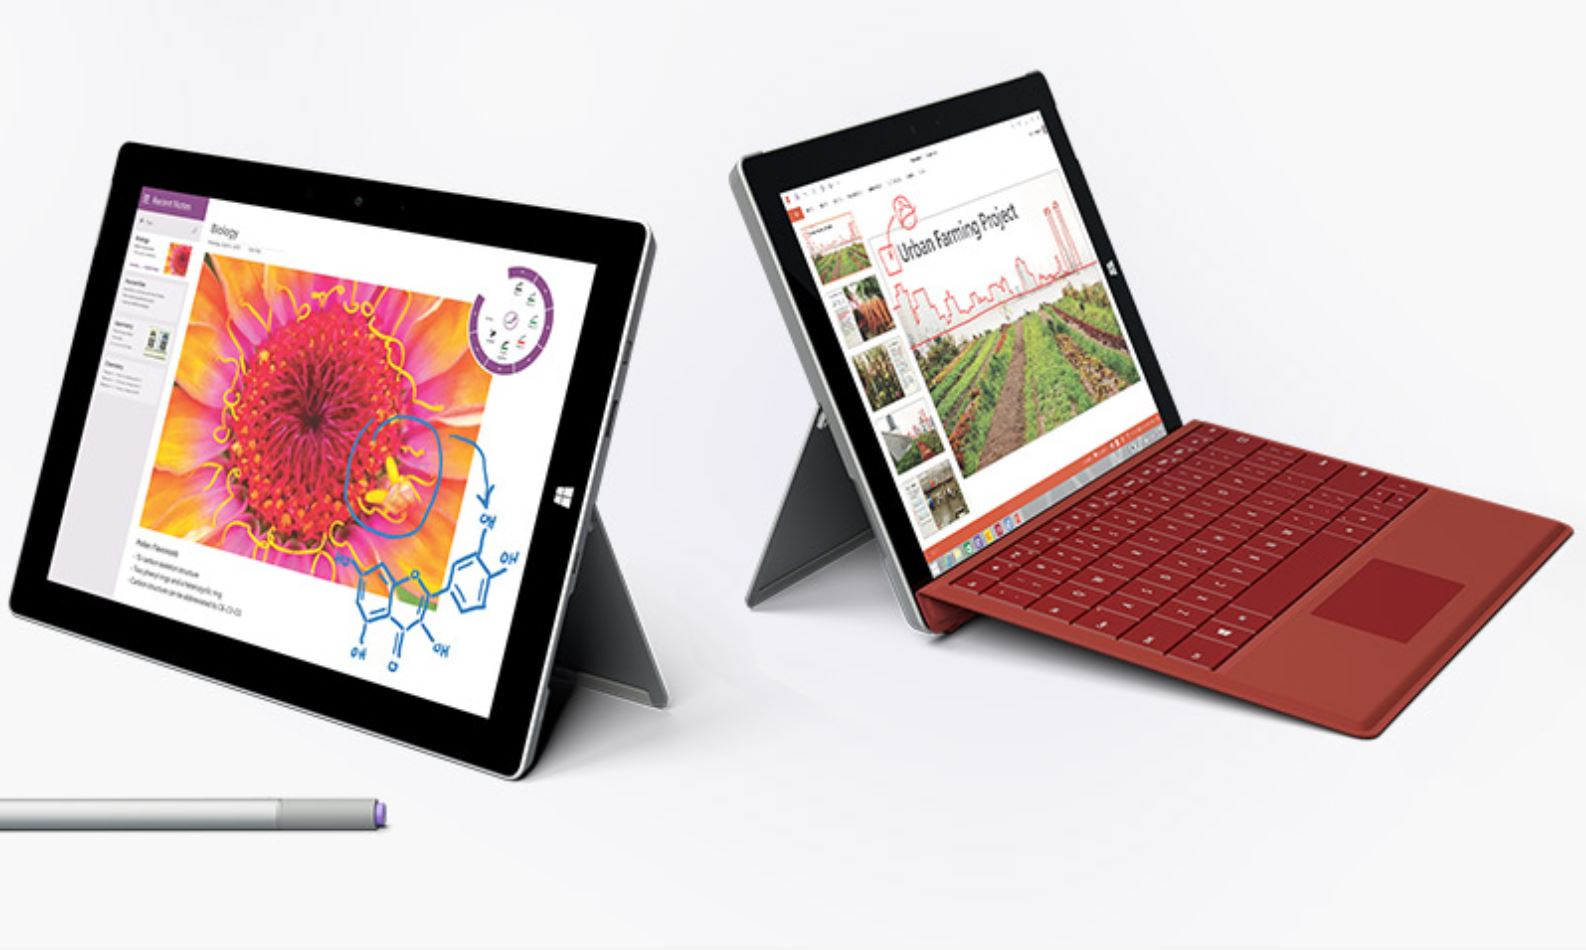 Test Microsoft Surface 3 4G 128Go - Un excellent compagnon en mobilité avec Orange Business